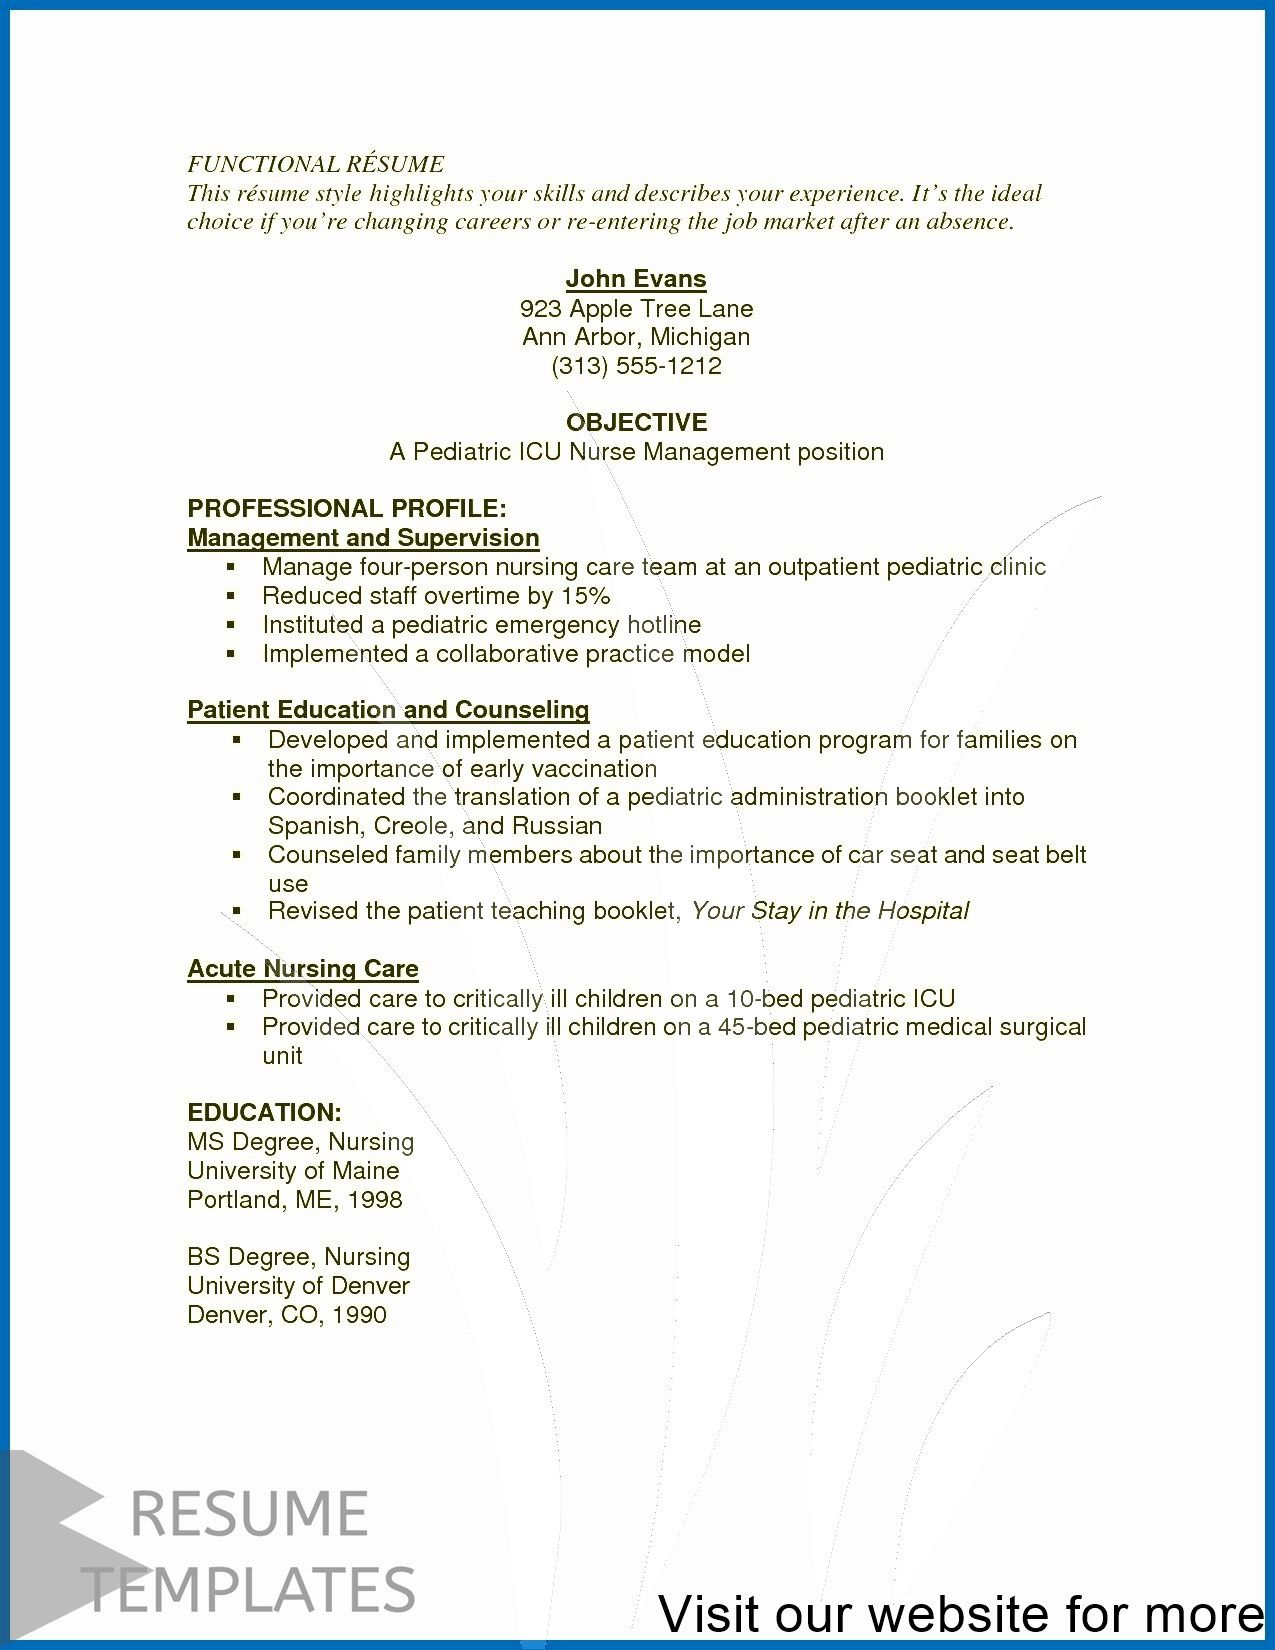 Resume Template Adobe Xd Professional In 2020 Resume Template Resume Cover Letter Examples Cover Letter For Resume